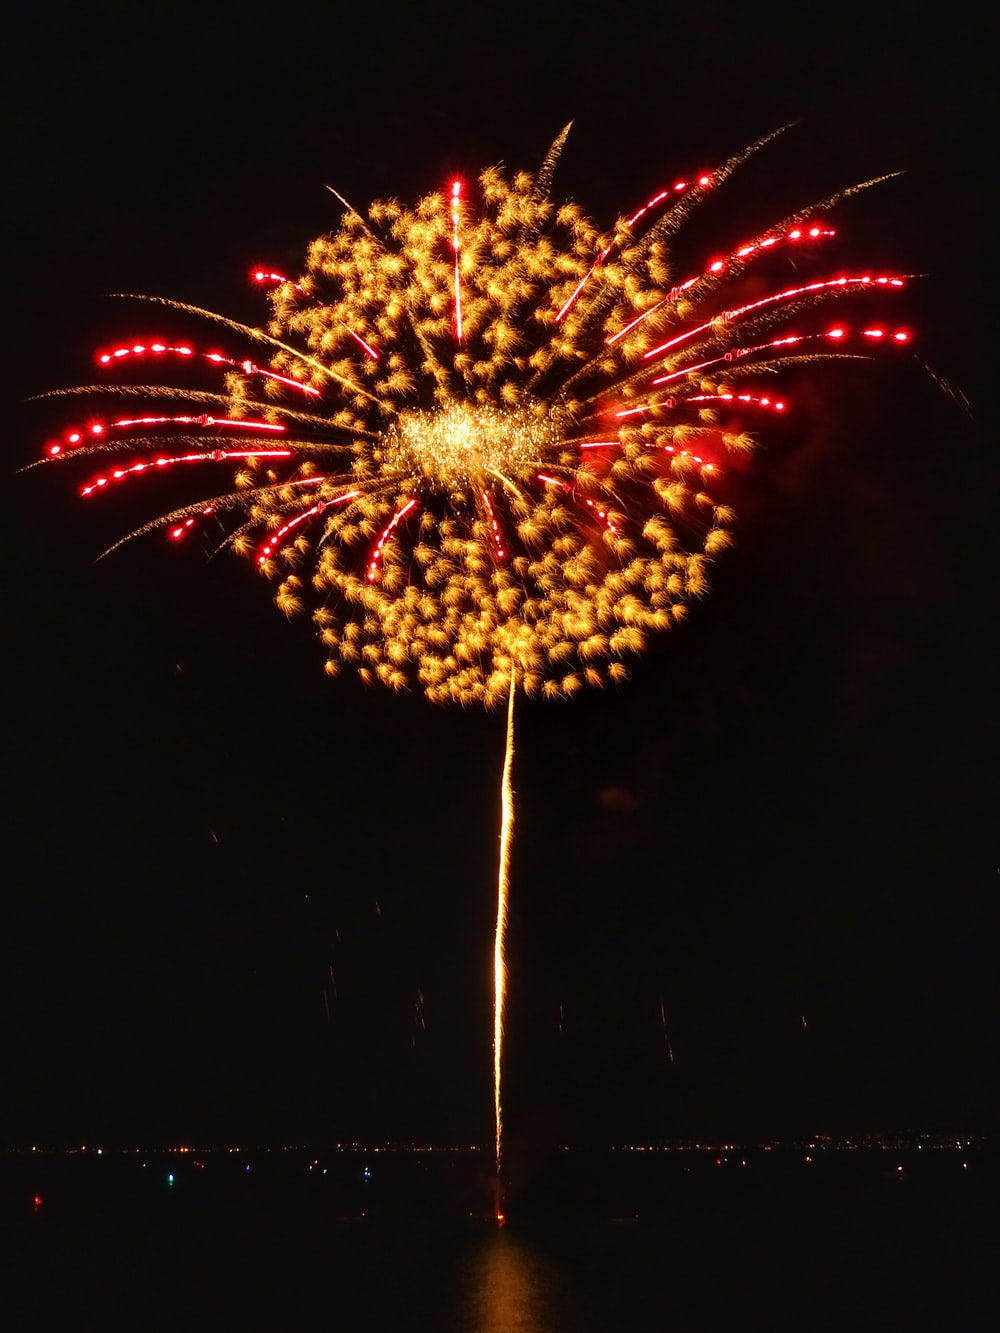 long-exposure photography of yellow and red fireworks